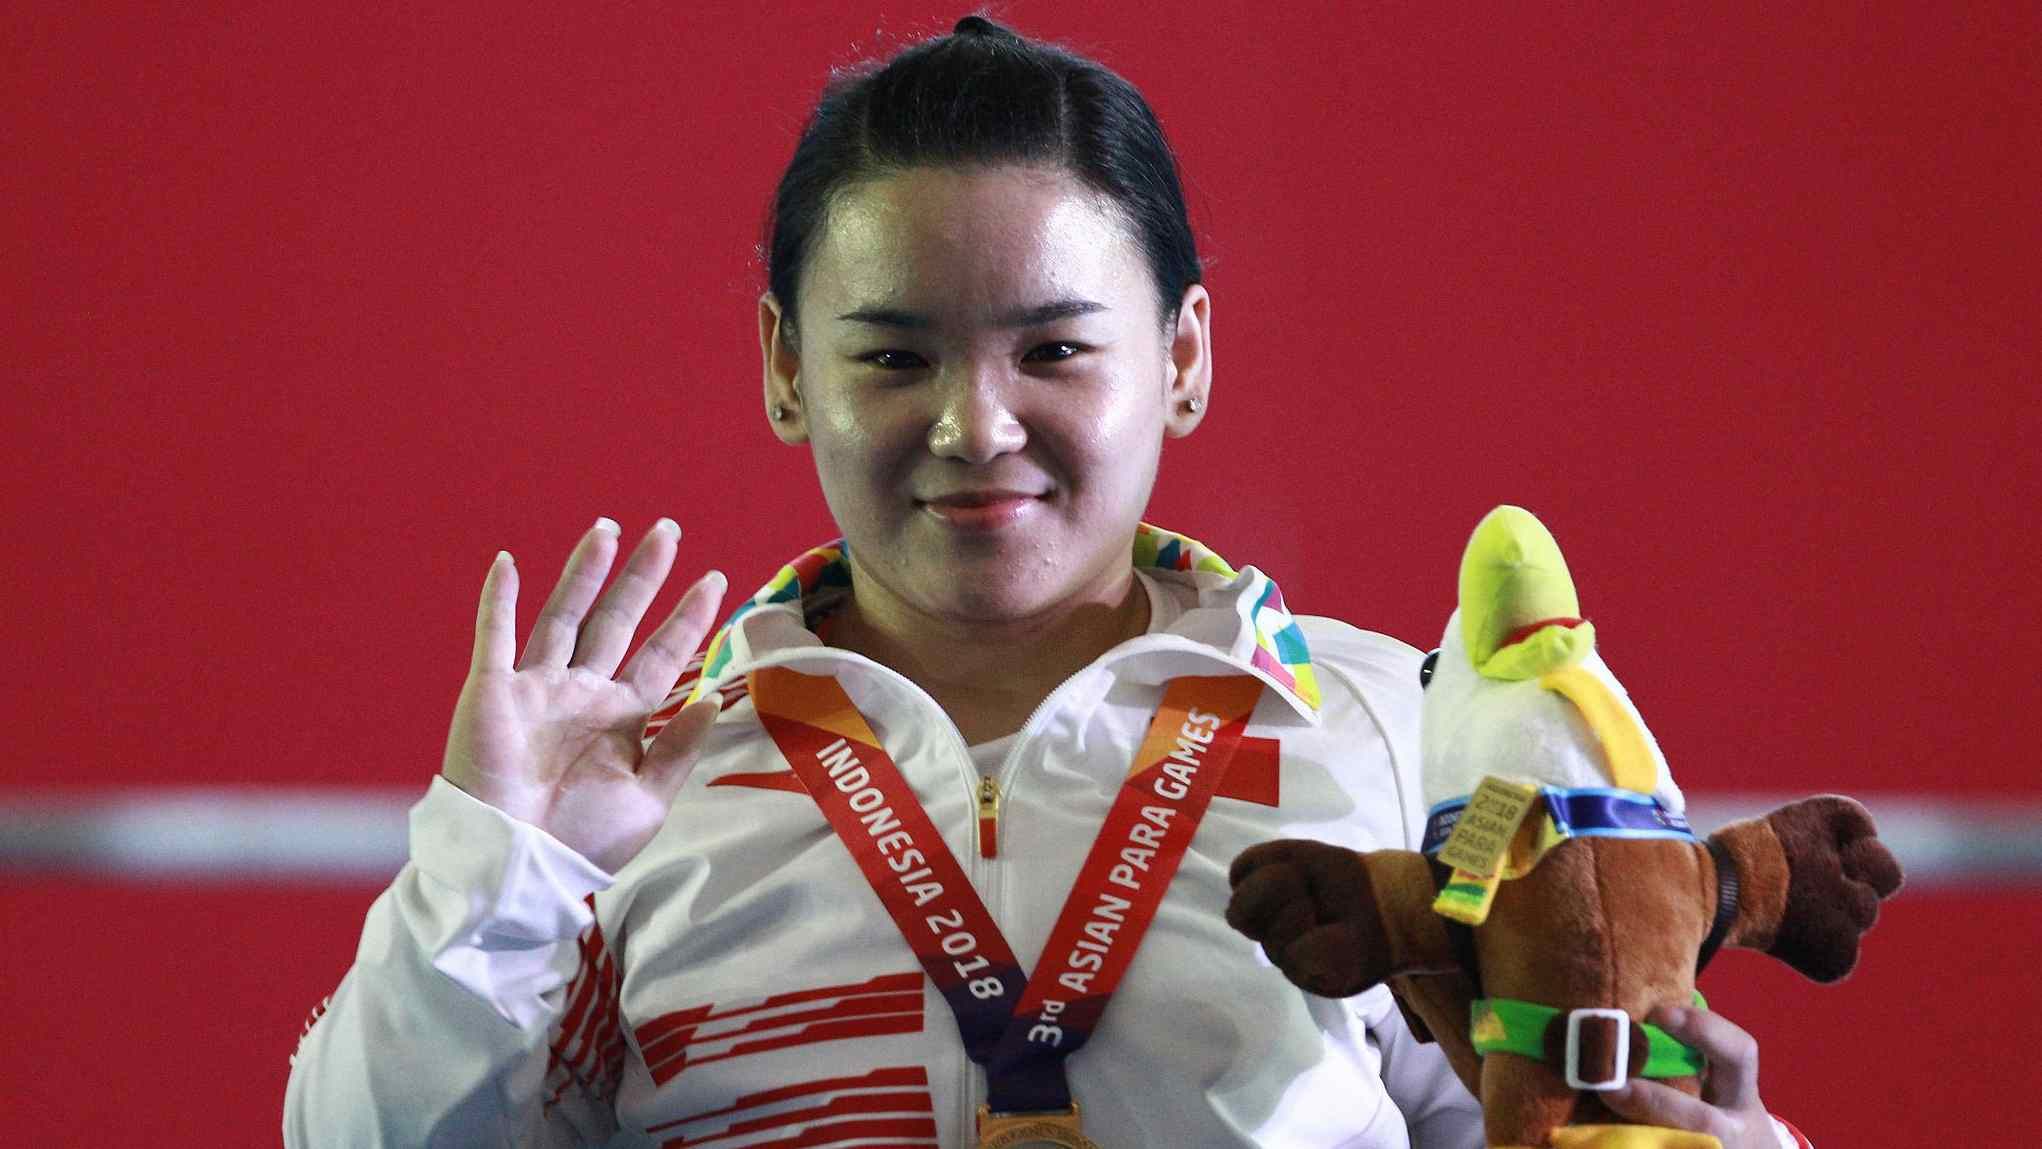 2018 Asian Para Games: Cui wins China's first gold, Guo breaks world records